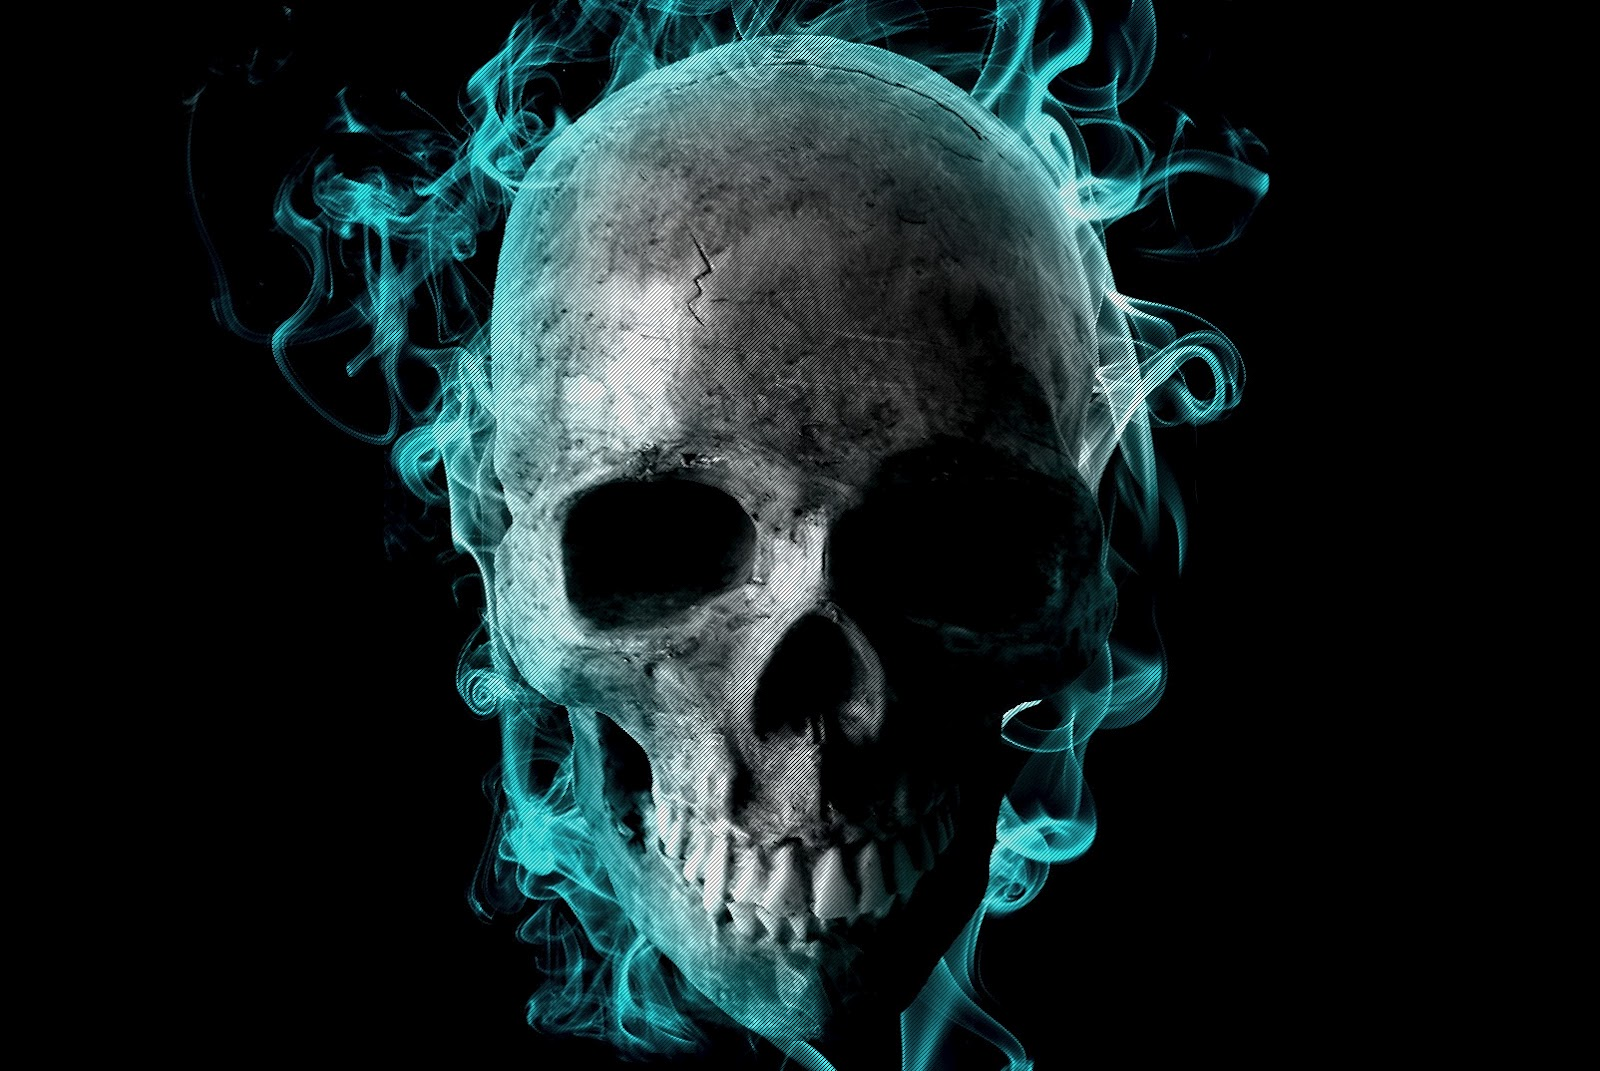 skull wallpaper wallpapers hd -#main